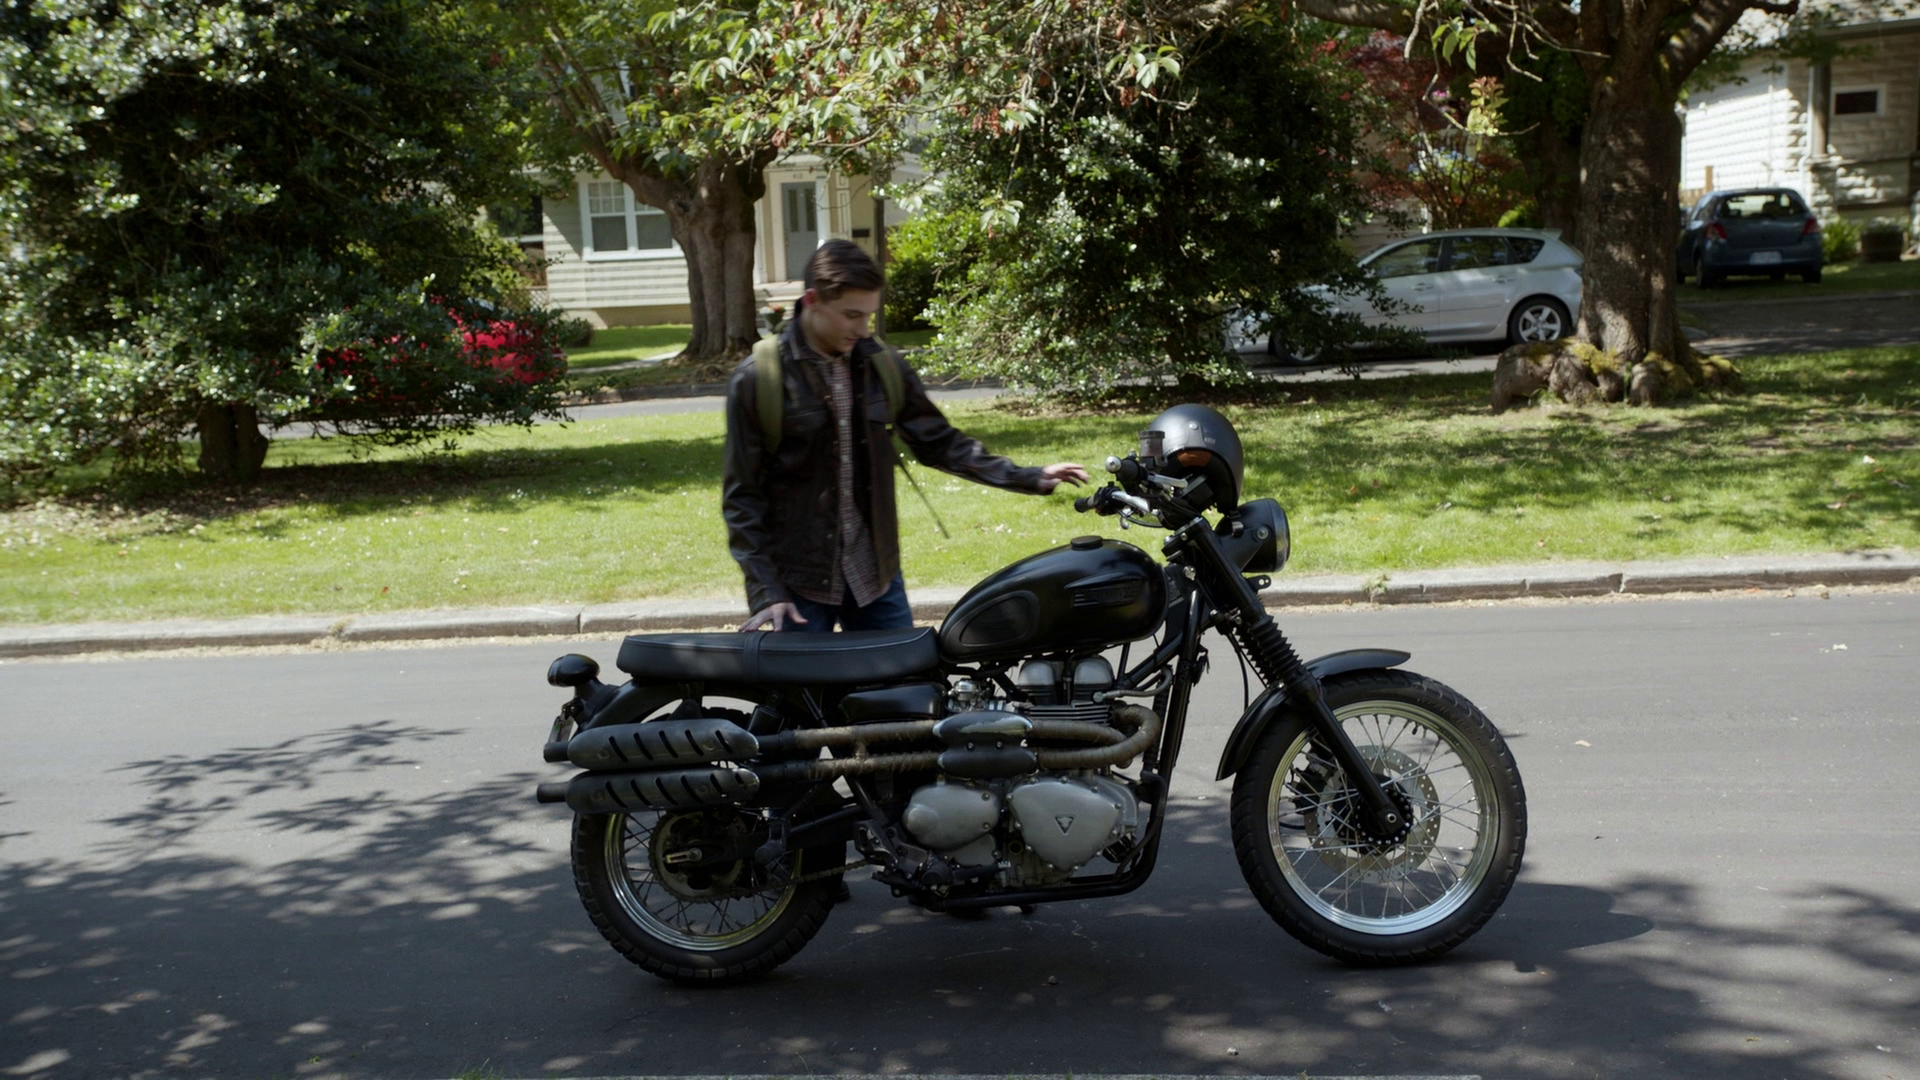 Henry's Motorcycle